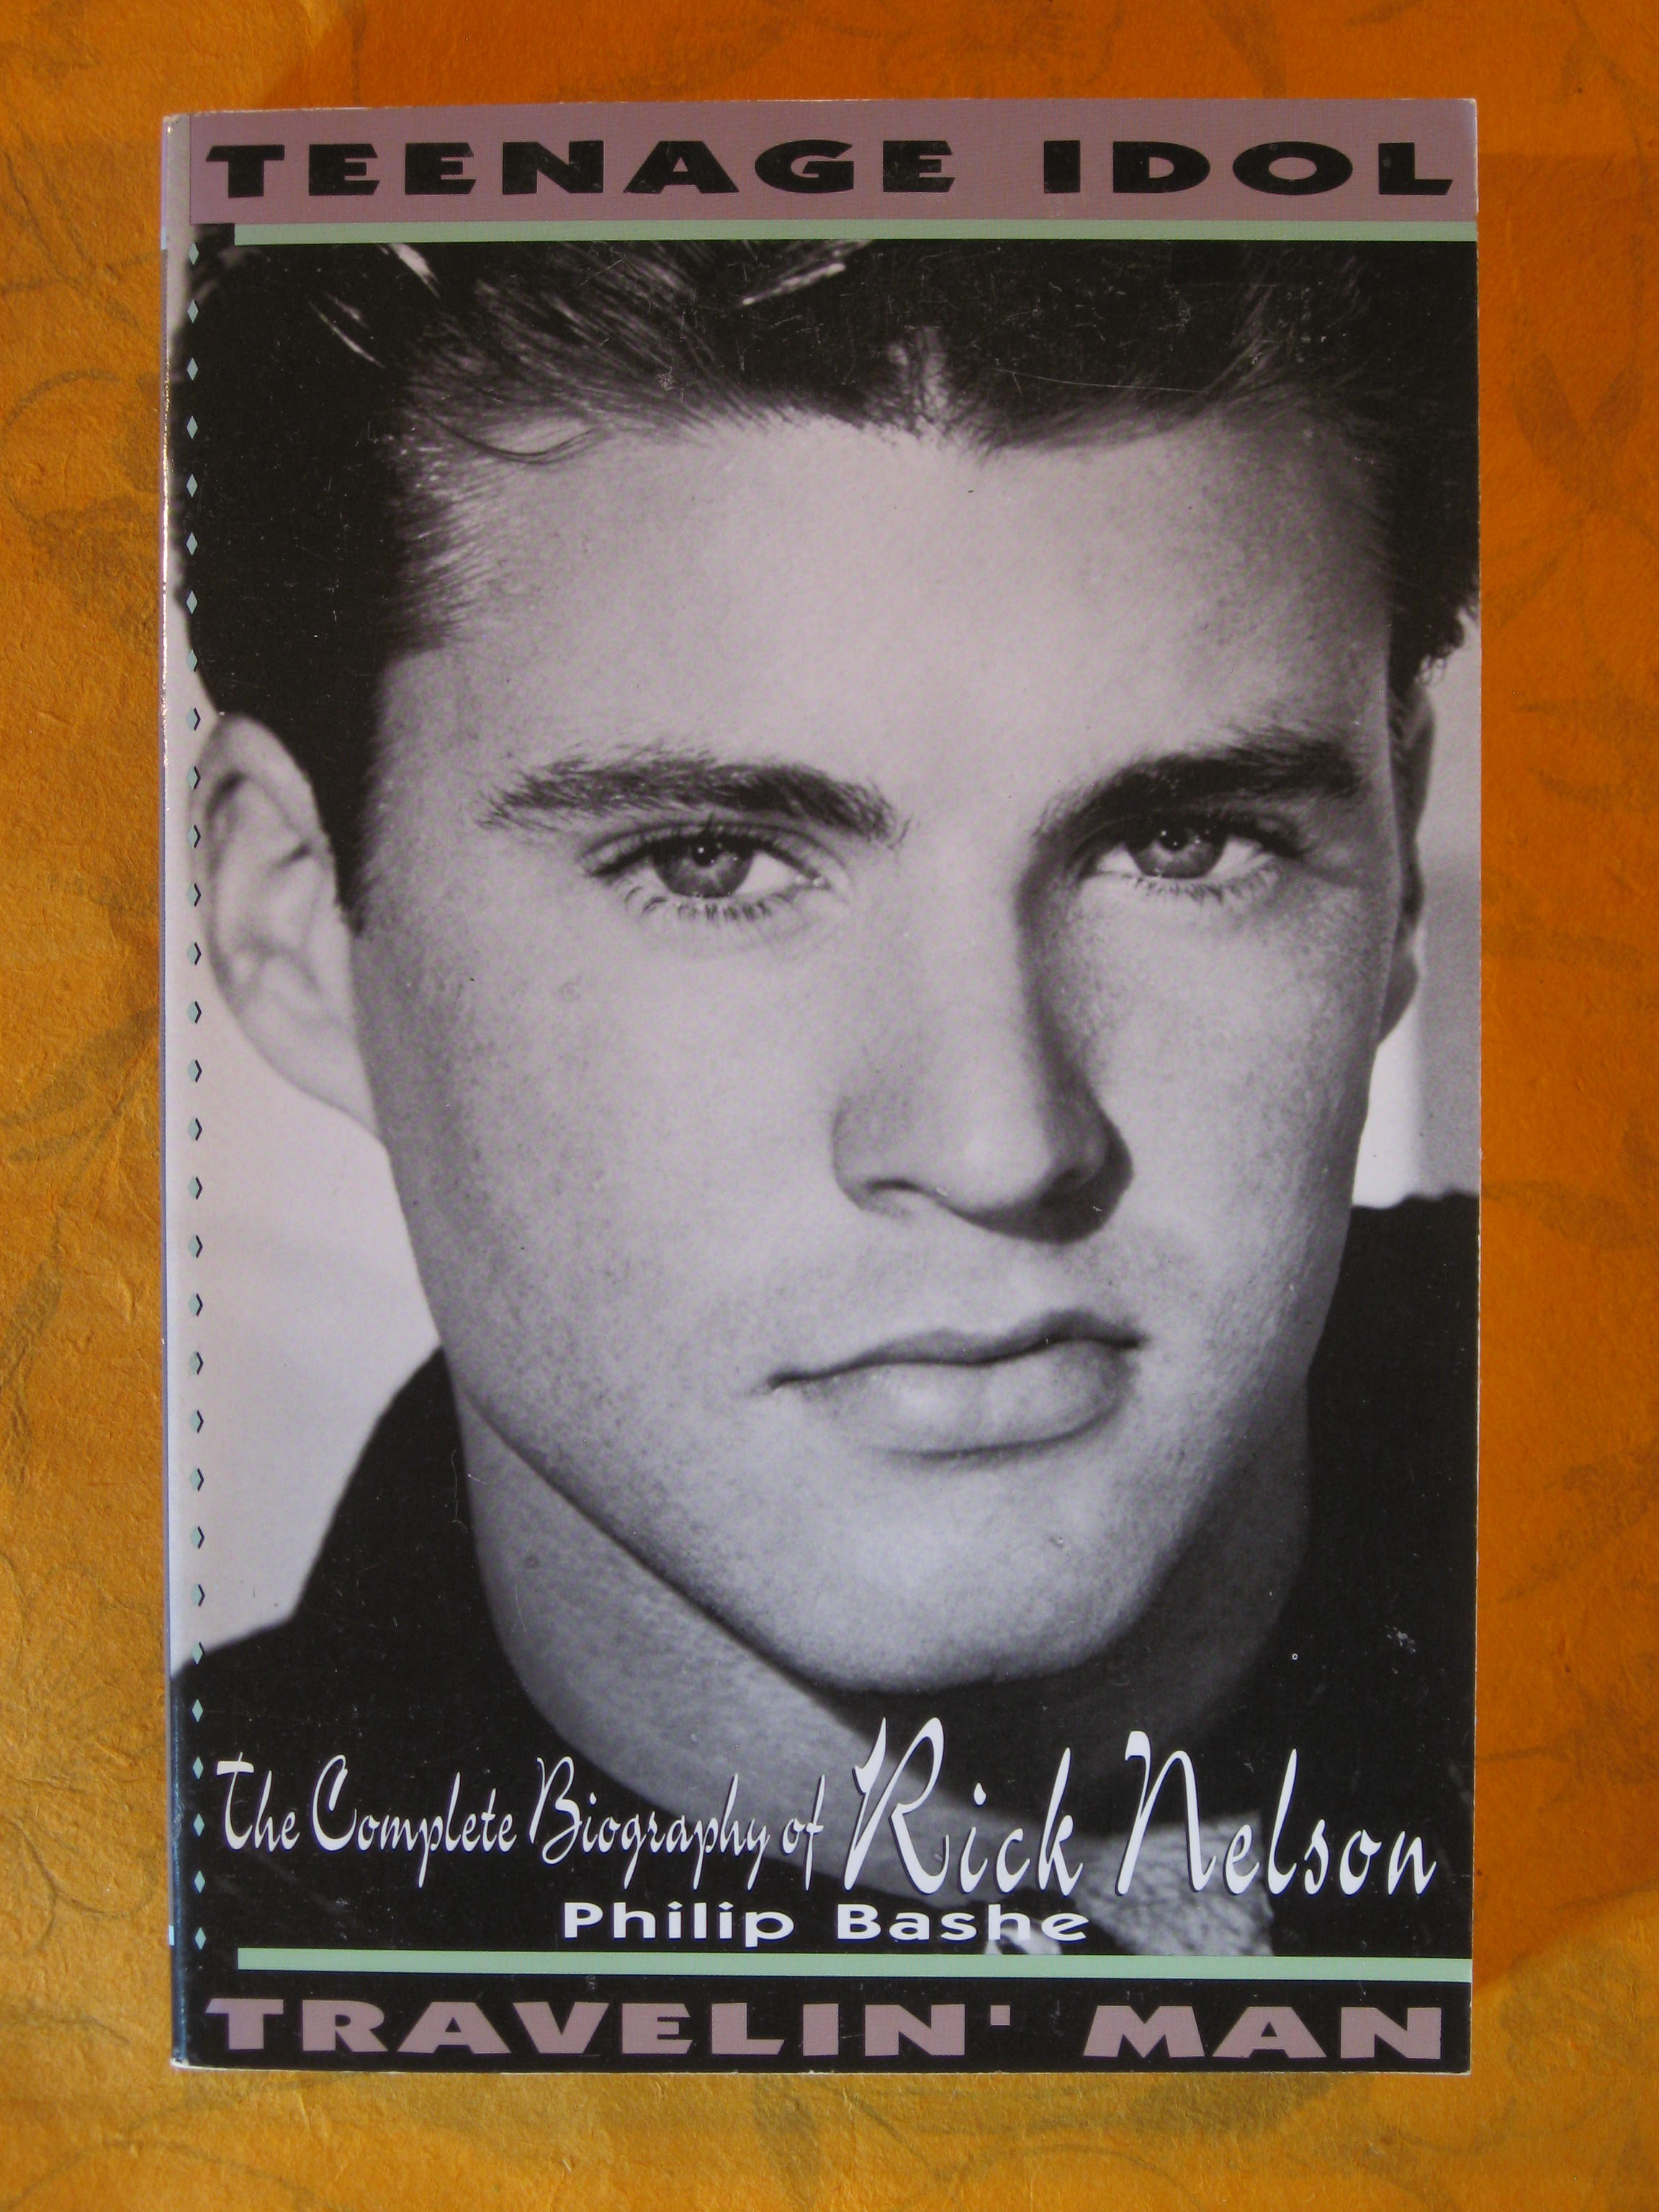 Image for Teenage Idol, Travelin' Man: The Complete Biography of Rick Nelson